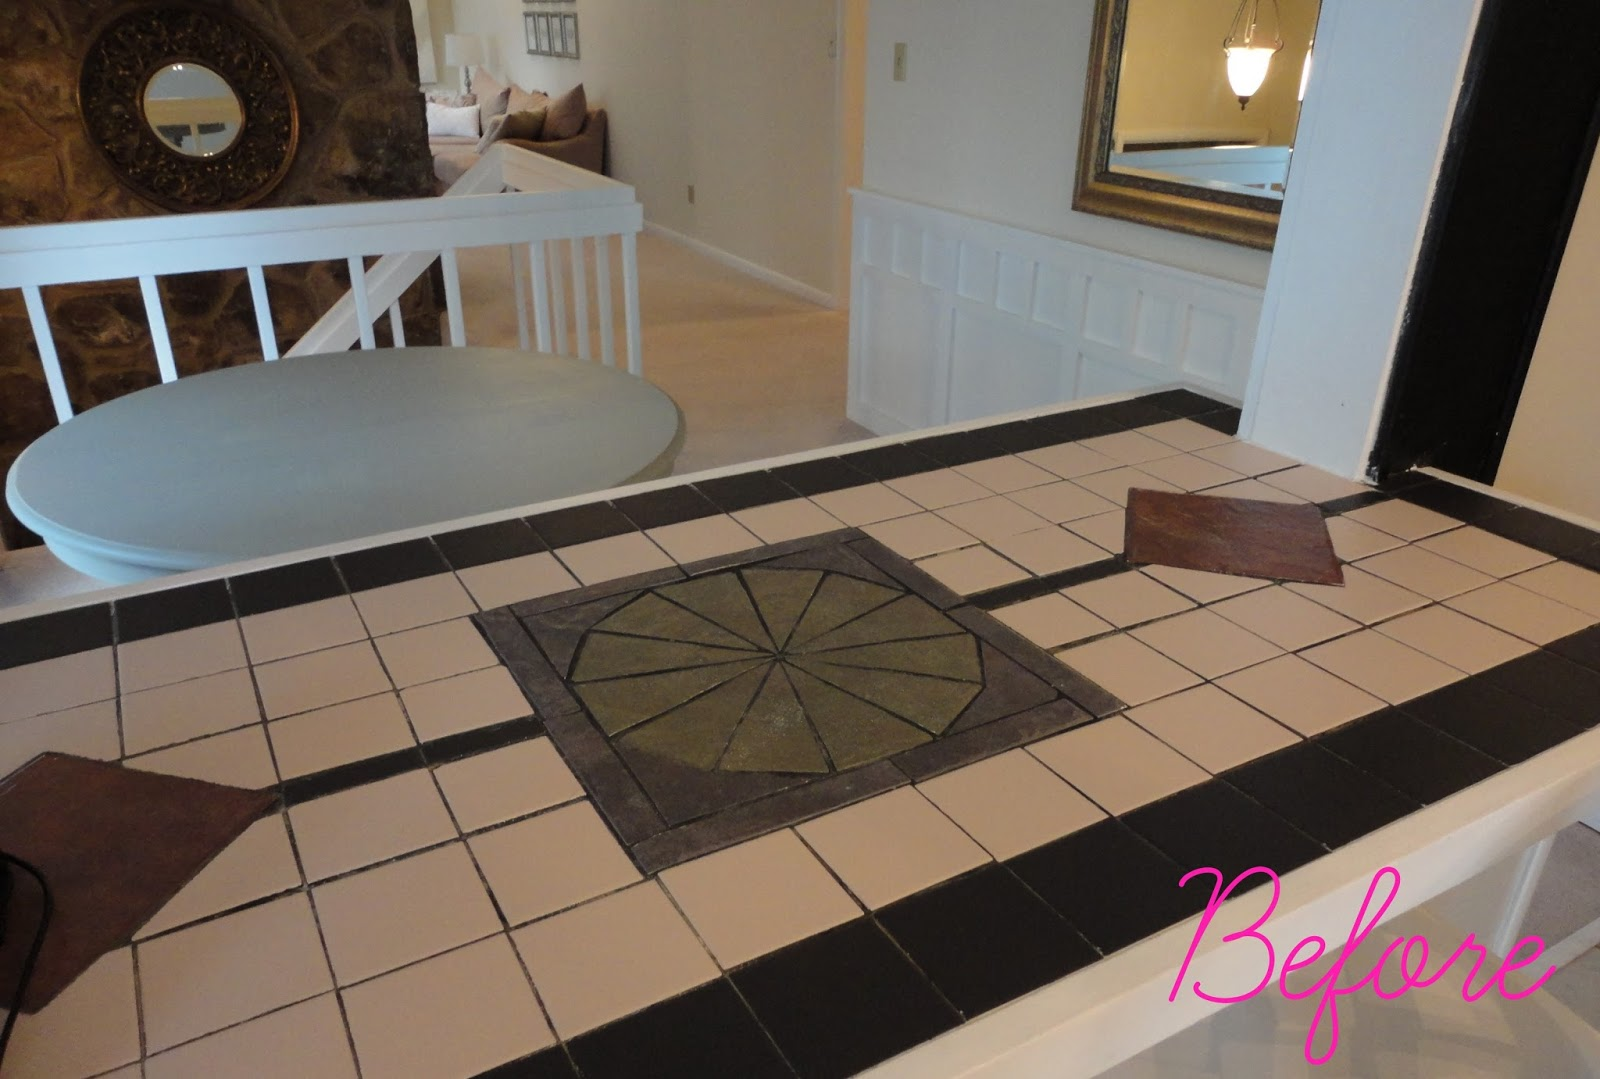 Remarkable Livelovediy How To Paint Tile Countertops Interior Design Ideas Grebswwsoteloinfo